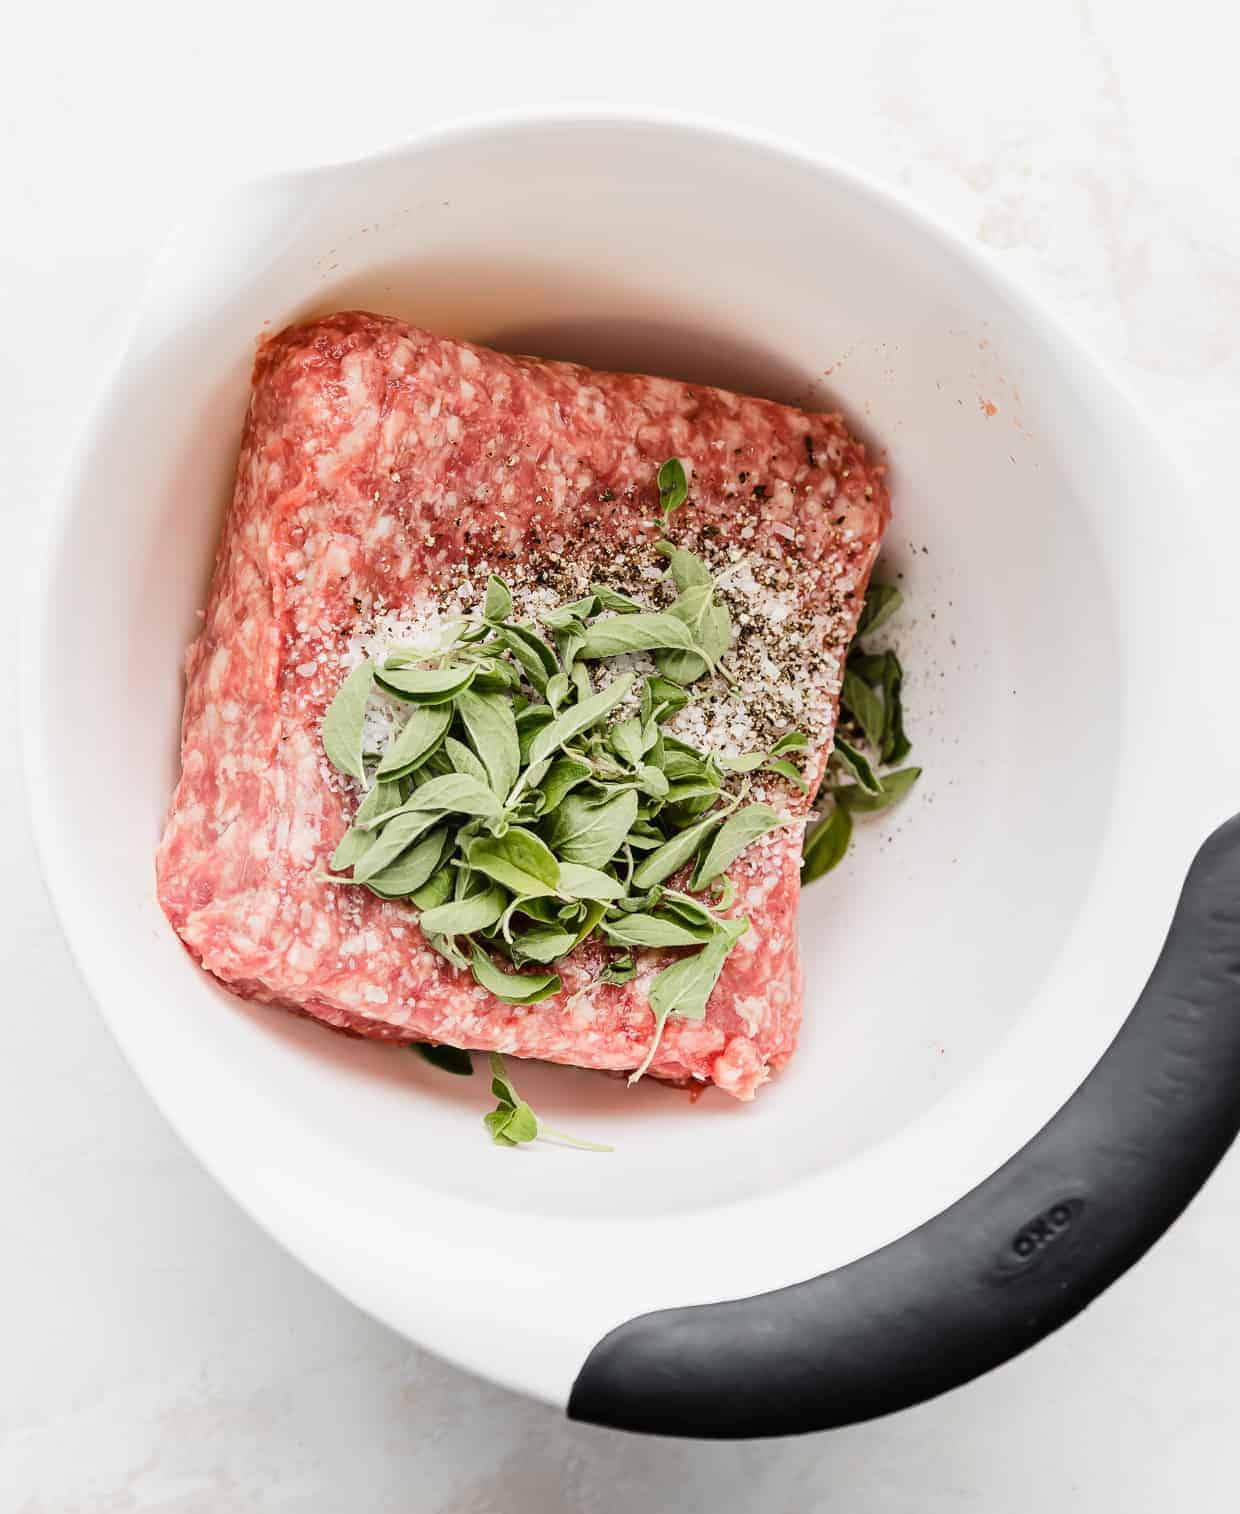 A white bowl with ground lamb, fresh herbs and seasonings in it.